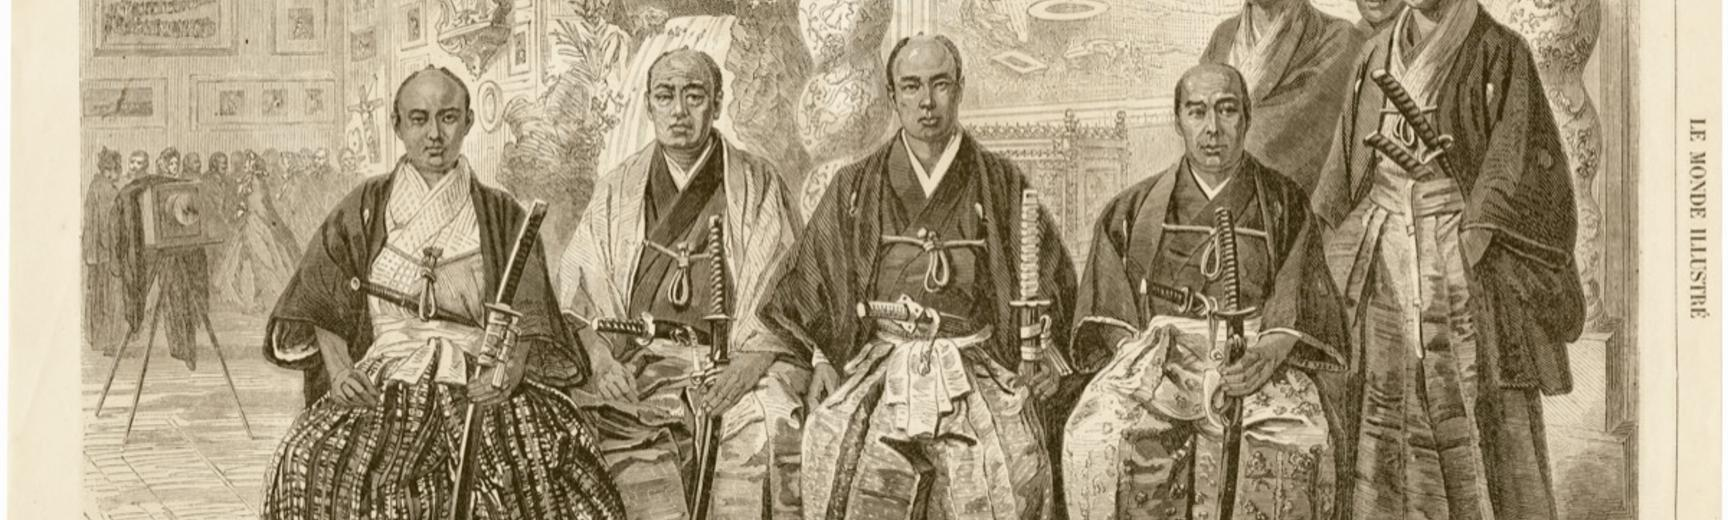 Members of the Takenouchi mission to Europe (1862), pictured wearing traditional dress and each carrying a daishō or pair of swords (katana and wakizashi). This engraving, published in Le Monde illustré, was based on photographs taken in the Paris studio